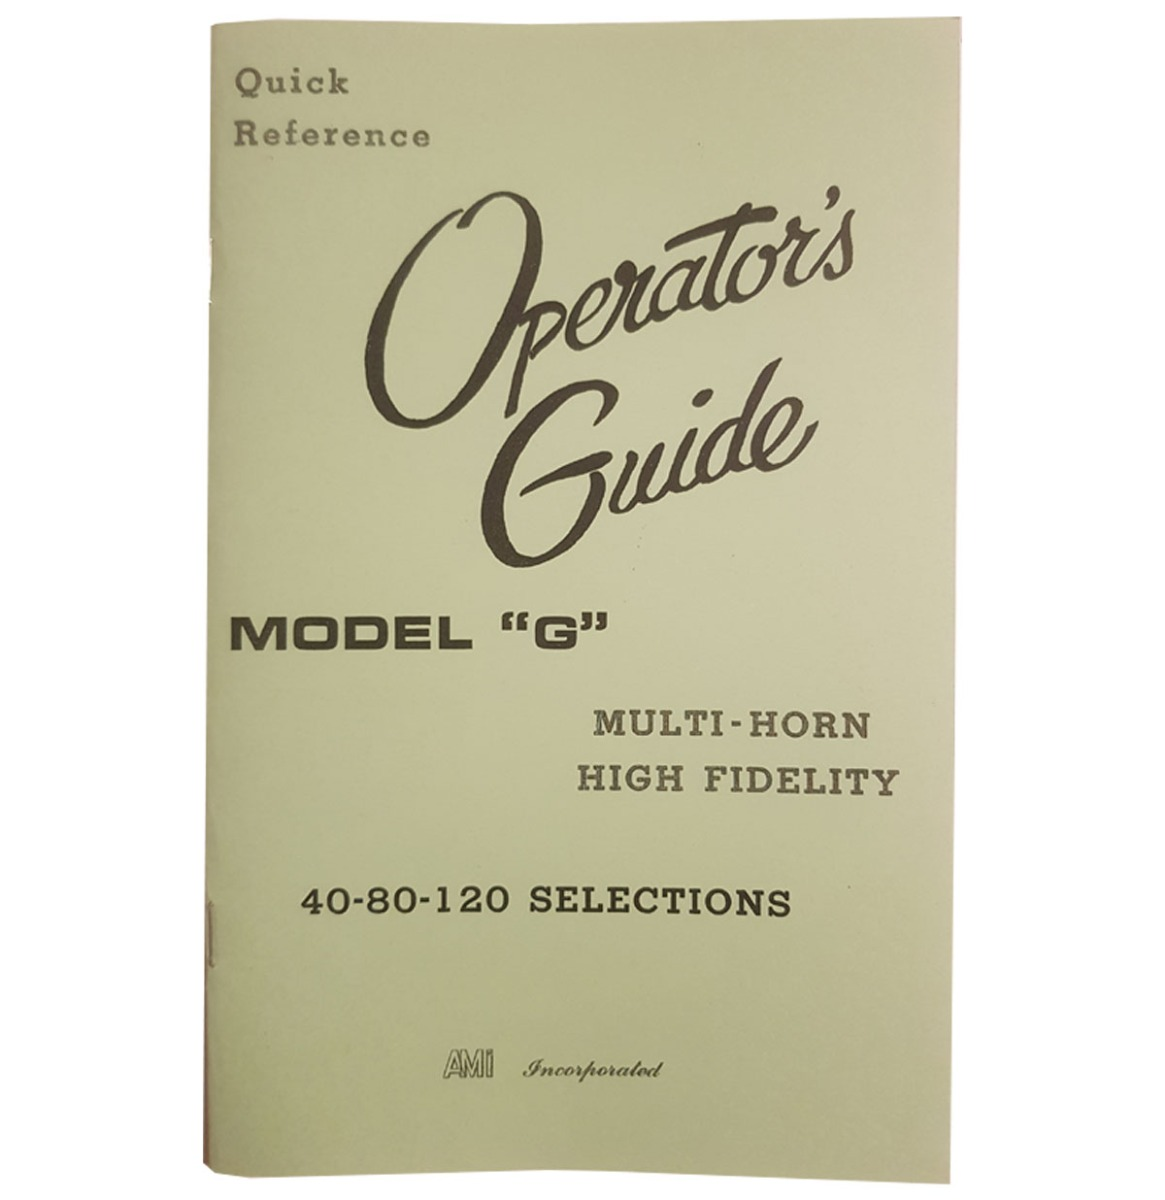 AMI G Jukebox Operator's Guide - Quick Reference - 40 - 80 - 120 Selections